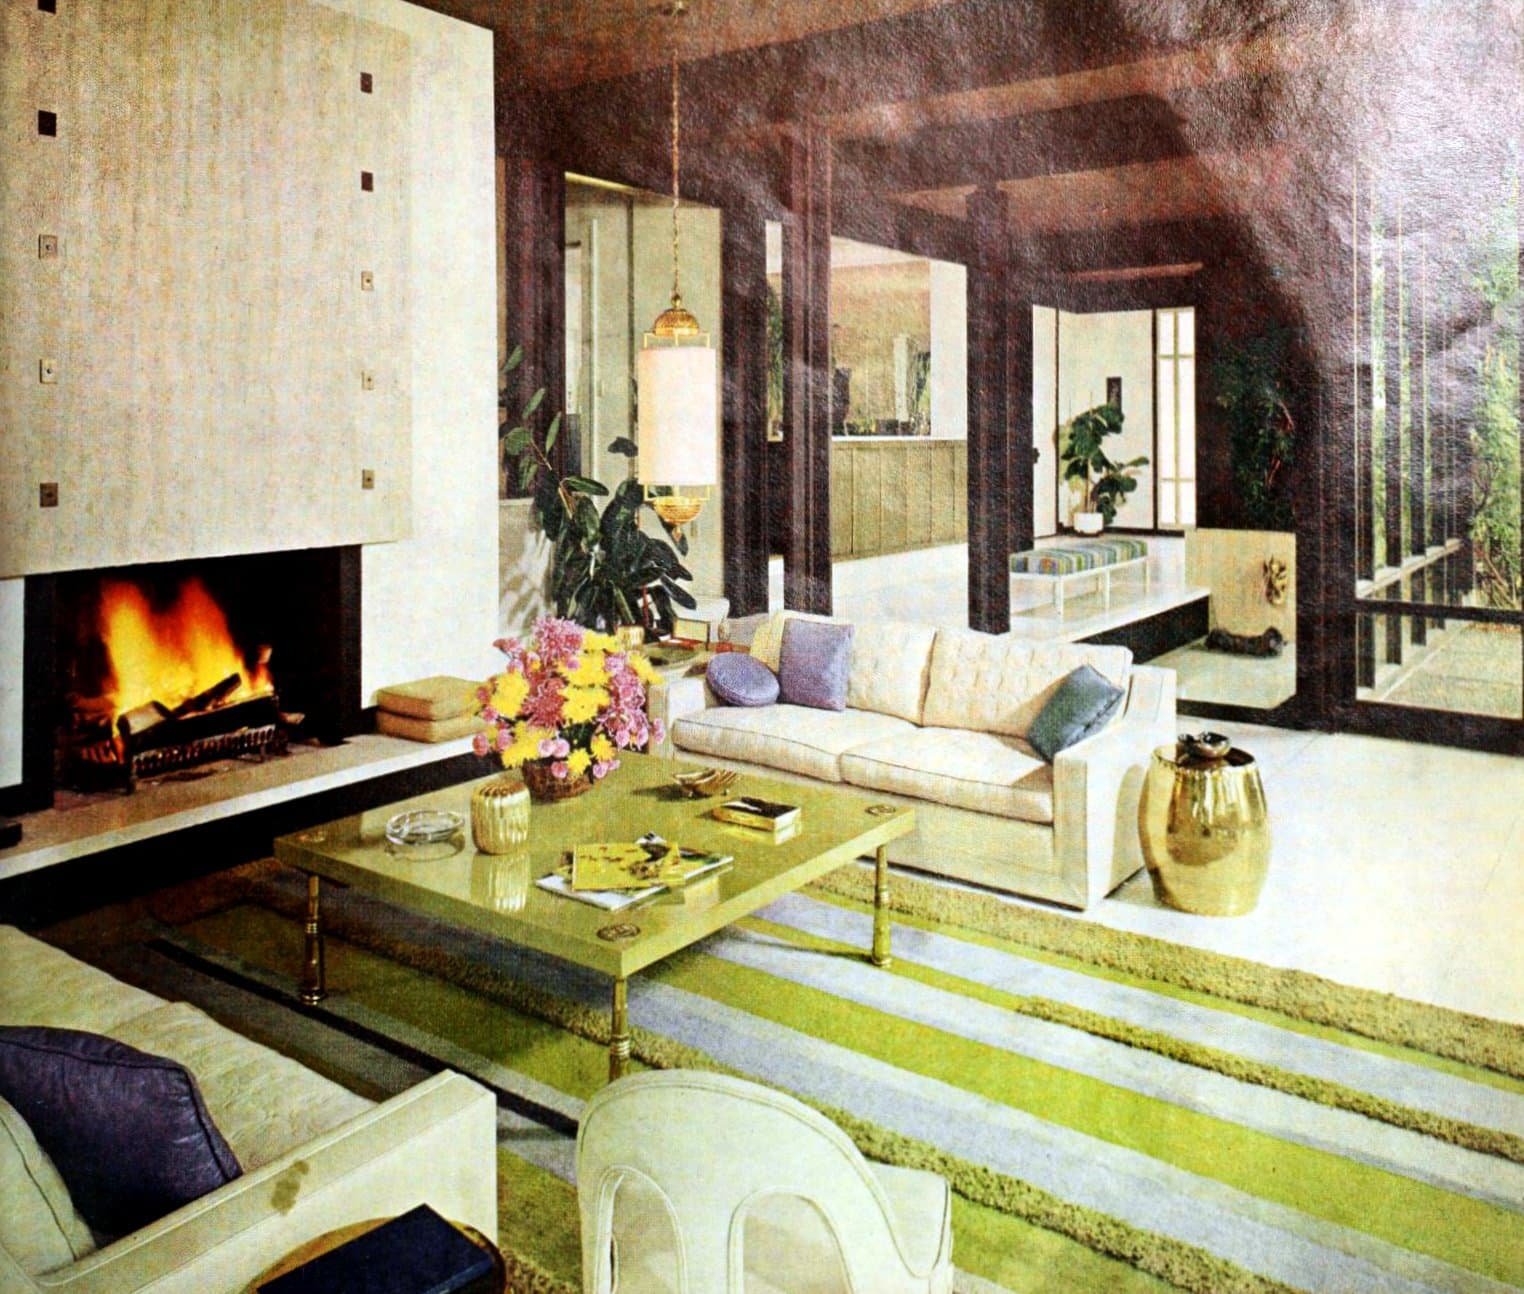 Cozy decorator style in a sixties home with a marble-clad fireplace (1966)